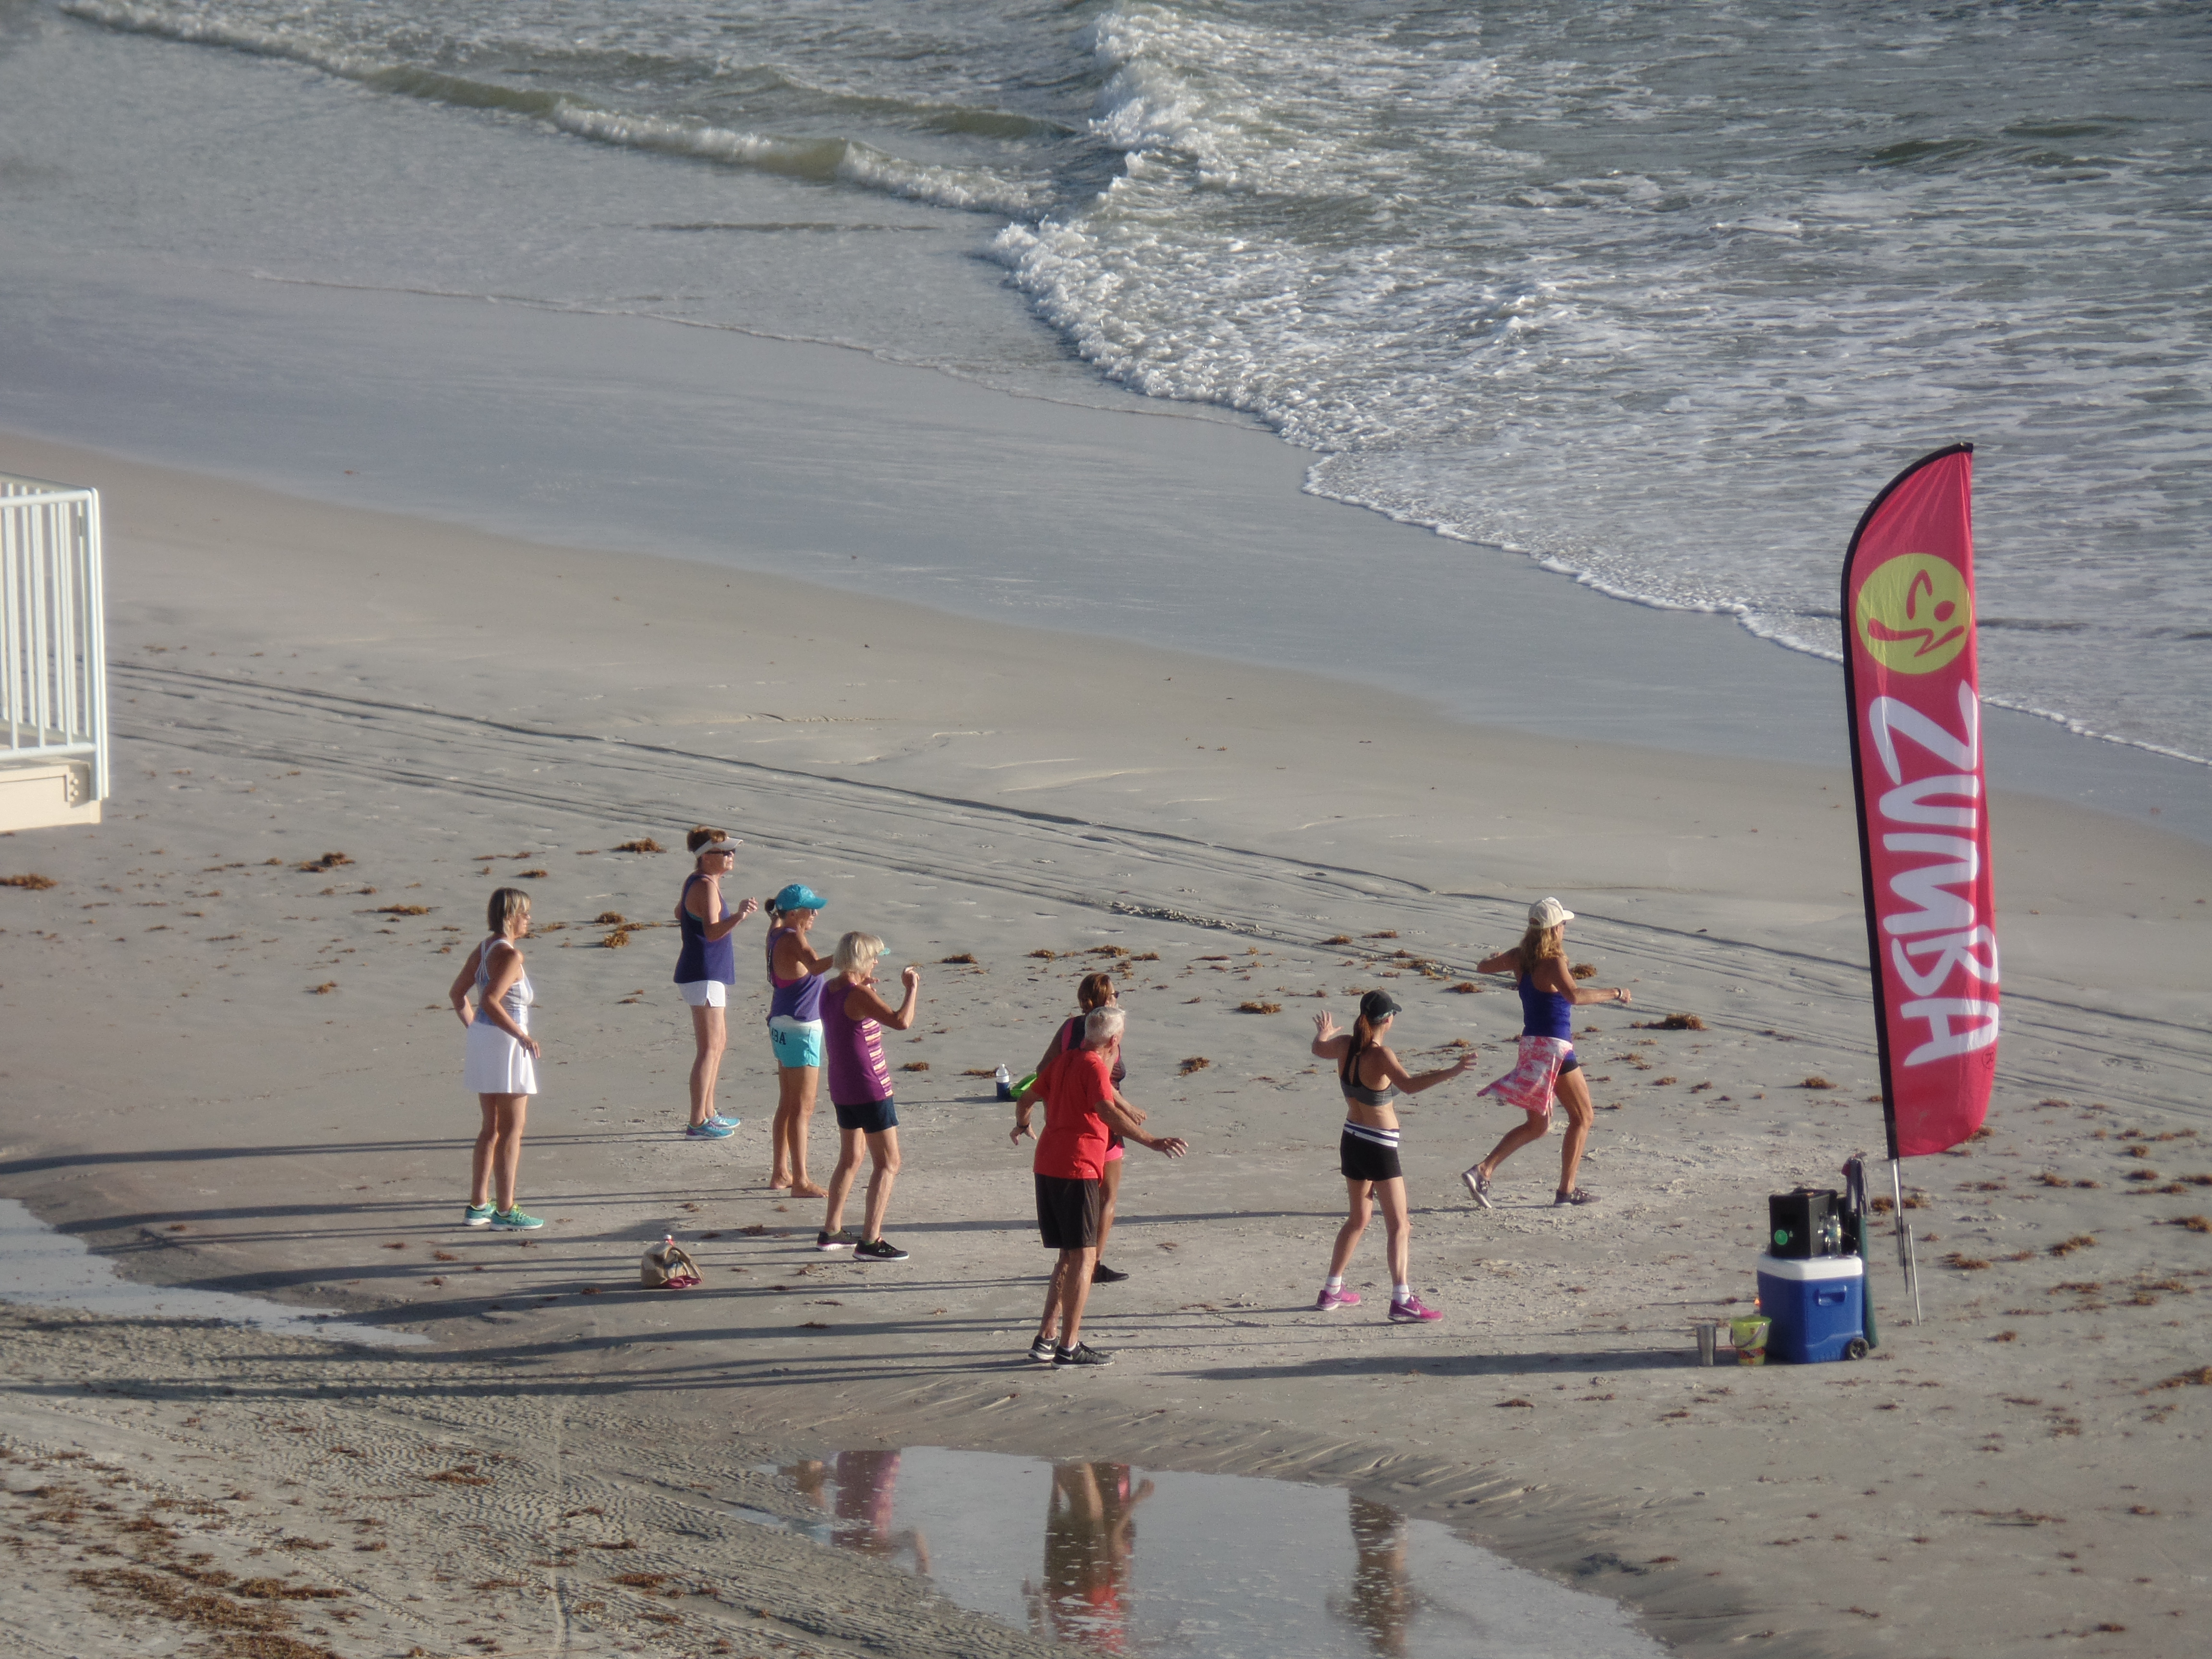 join the summer beach fun in New Smyrna Beach with exercise